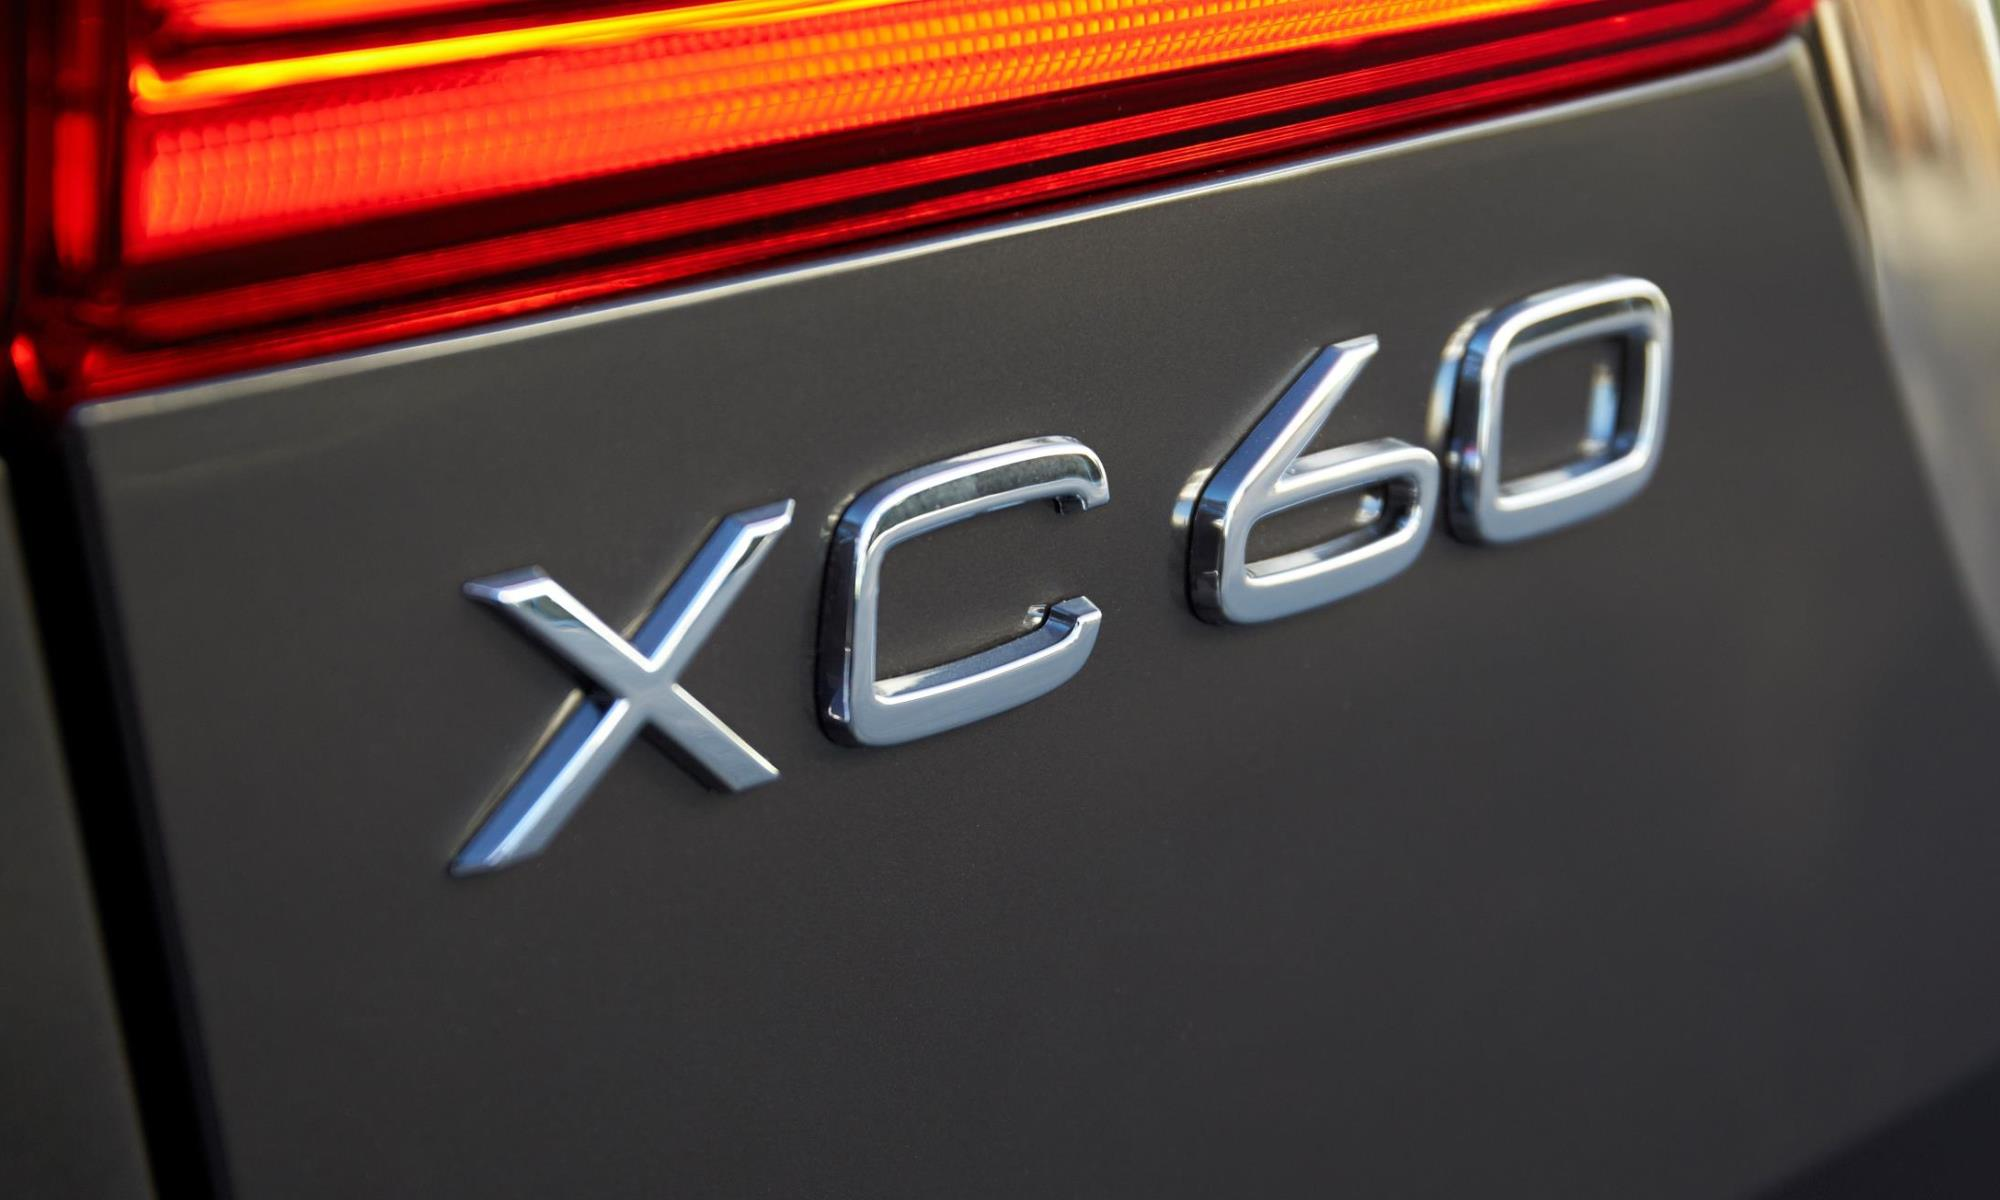 Volvo XC60 badge